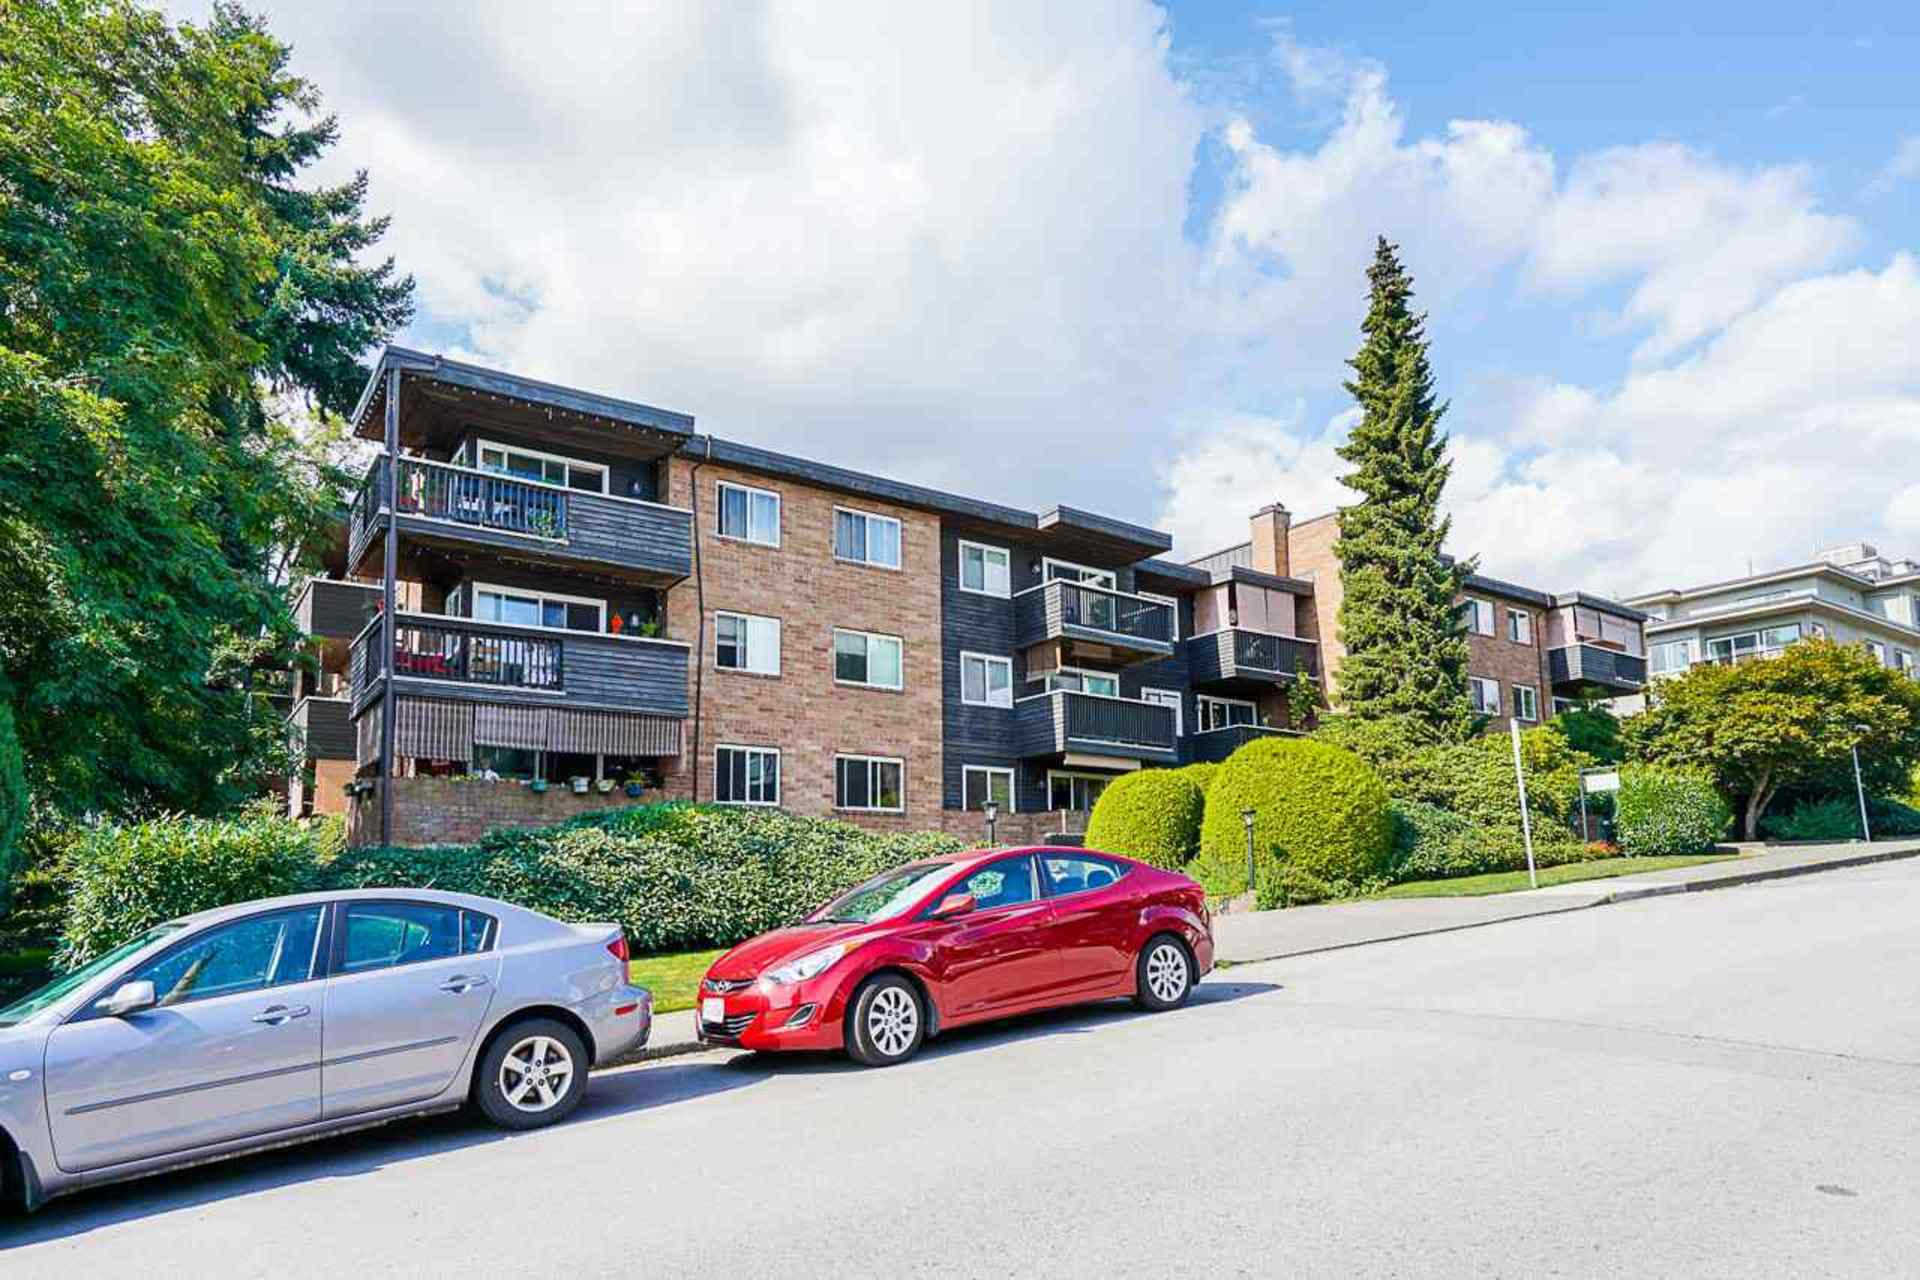 1011-fourth-avenue-uptown-nw-new-westminster-34 of 107 - 1011 Fourth Avenue, Uptown NW, New Westminster